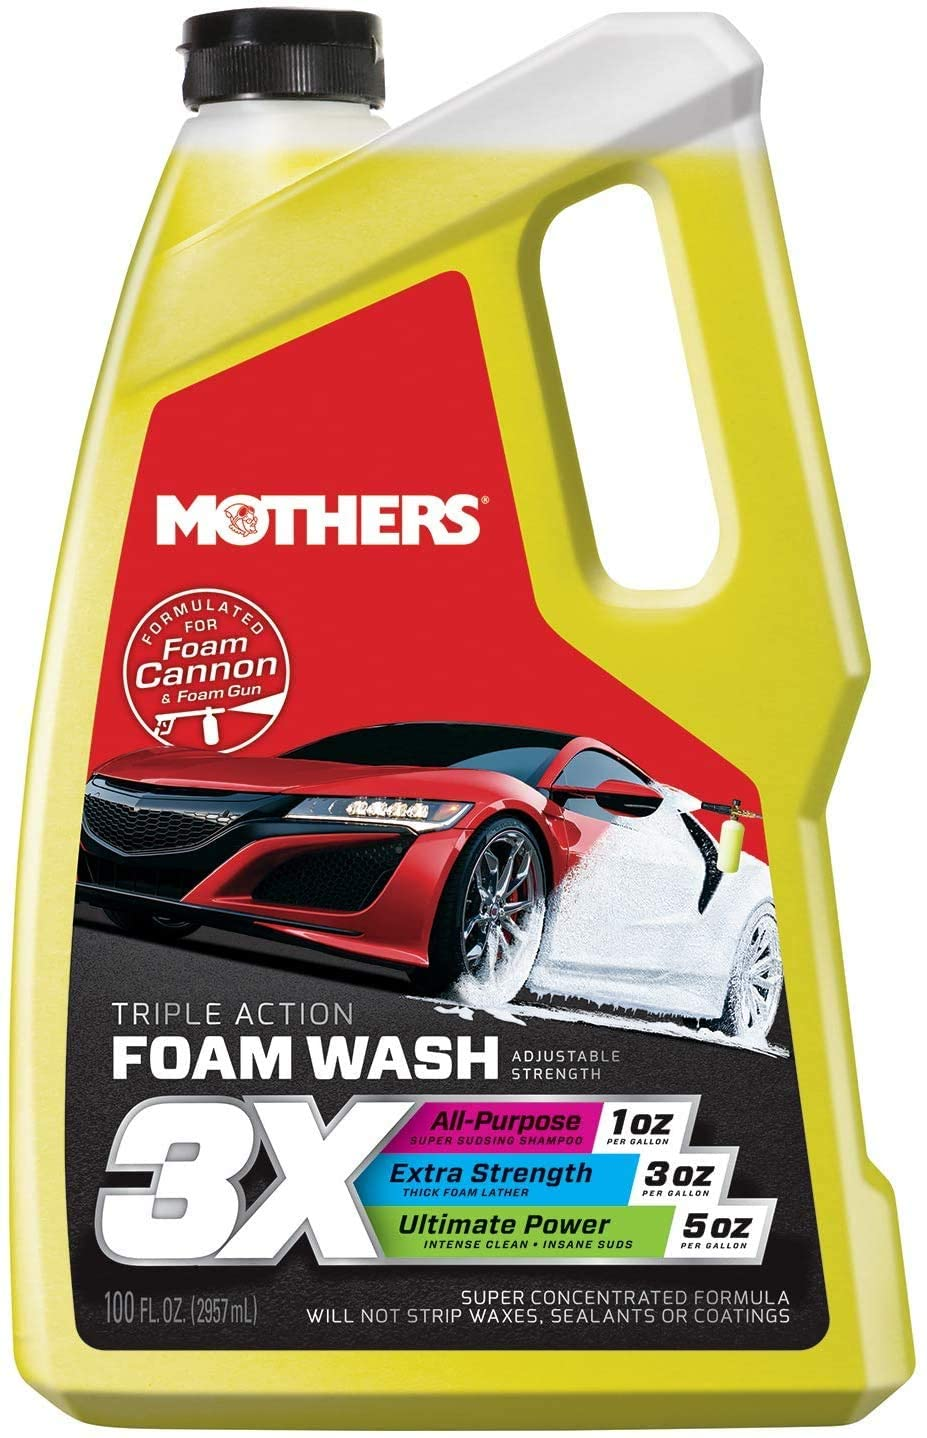 Snow Foam Car Wash by Mothers is a yellow container stating 3X foam wash on the label